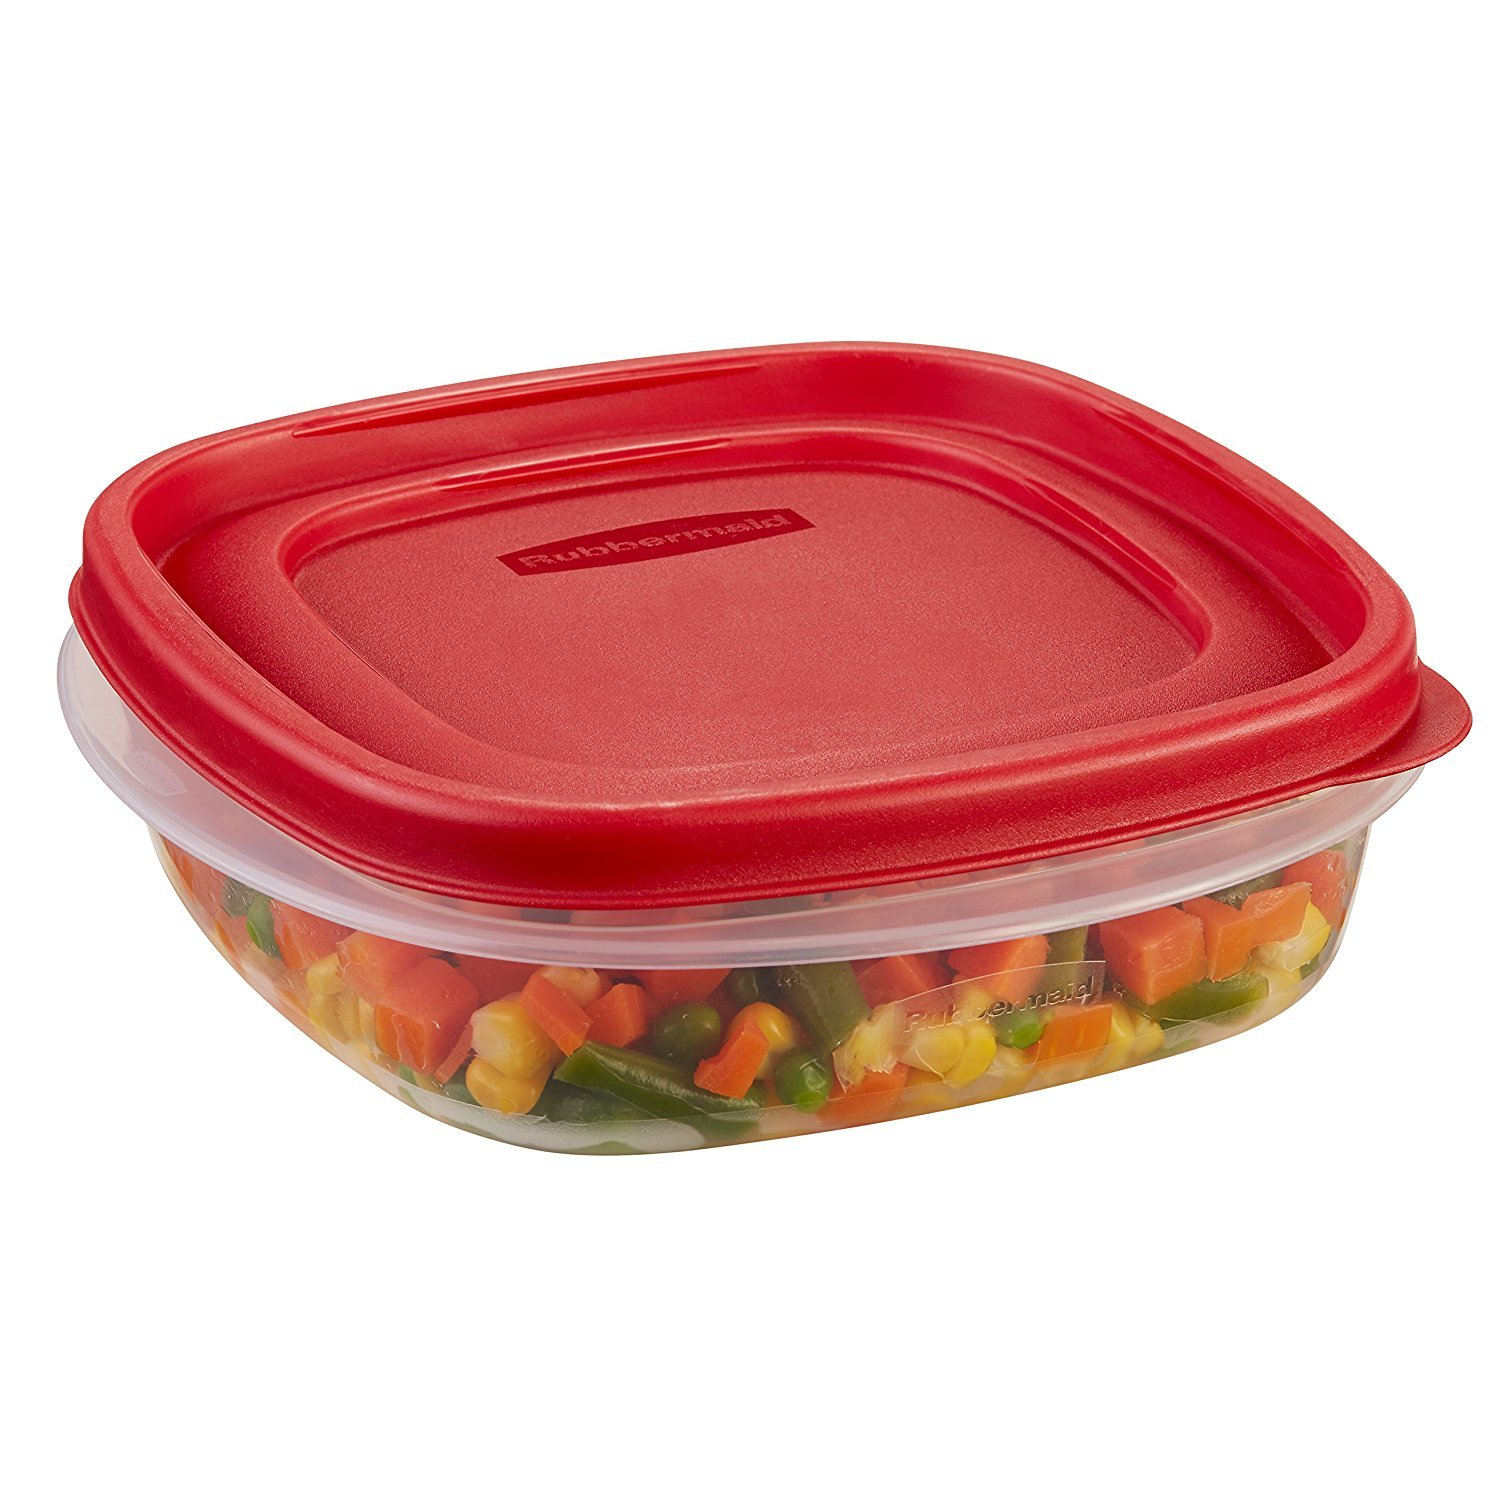 Rubbermaid Easy Find Lids Square 3-Cup Food Storage Container Pack of 4